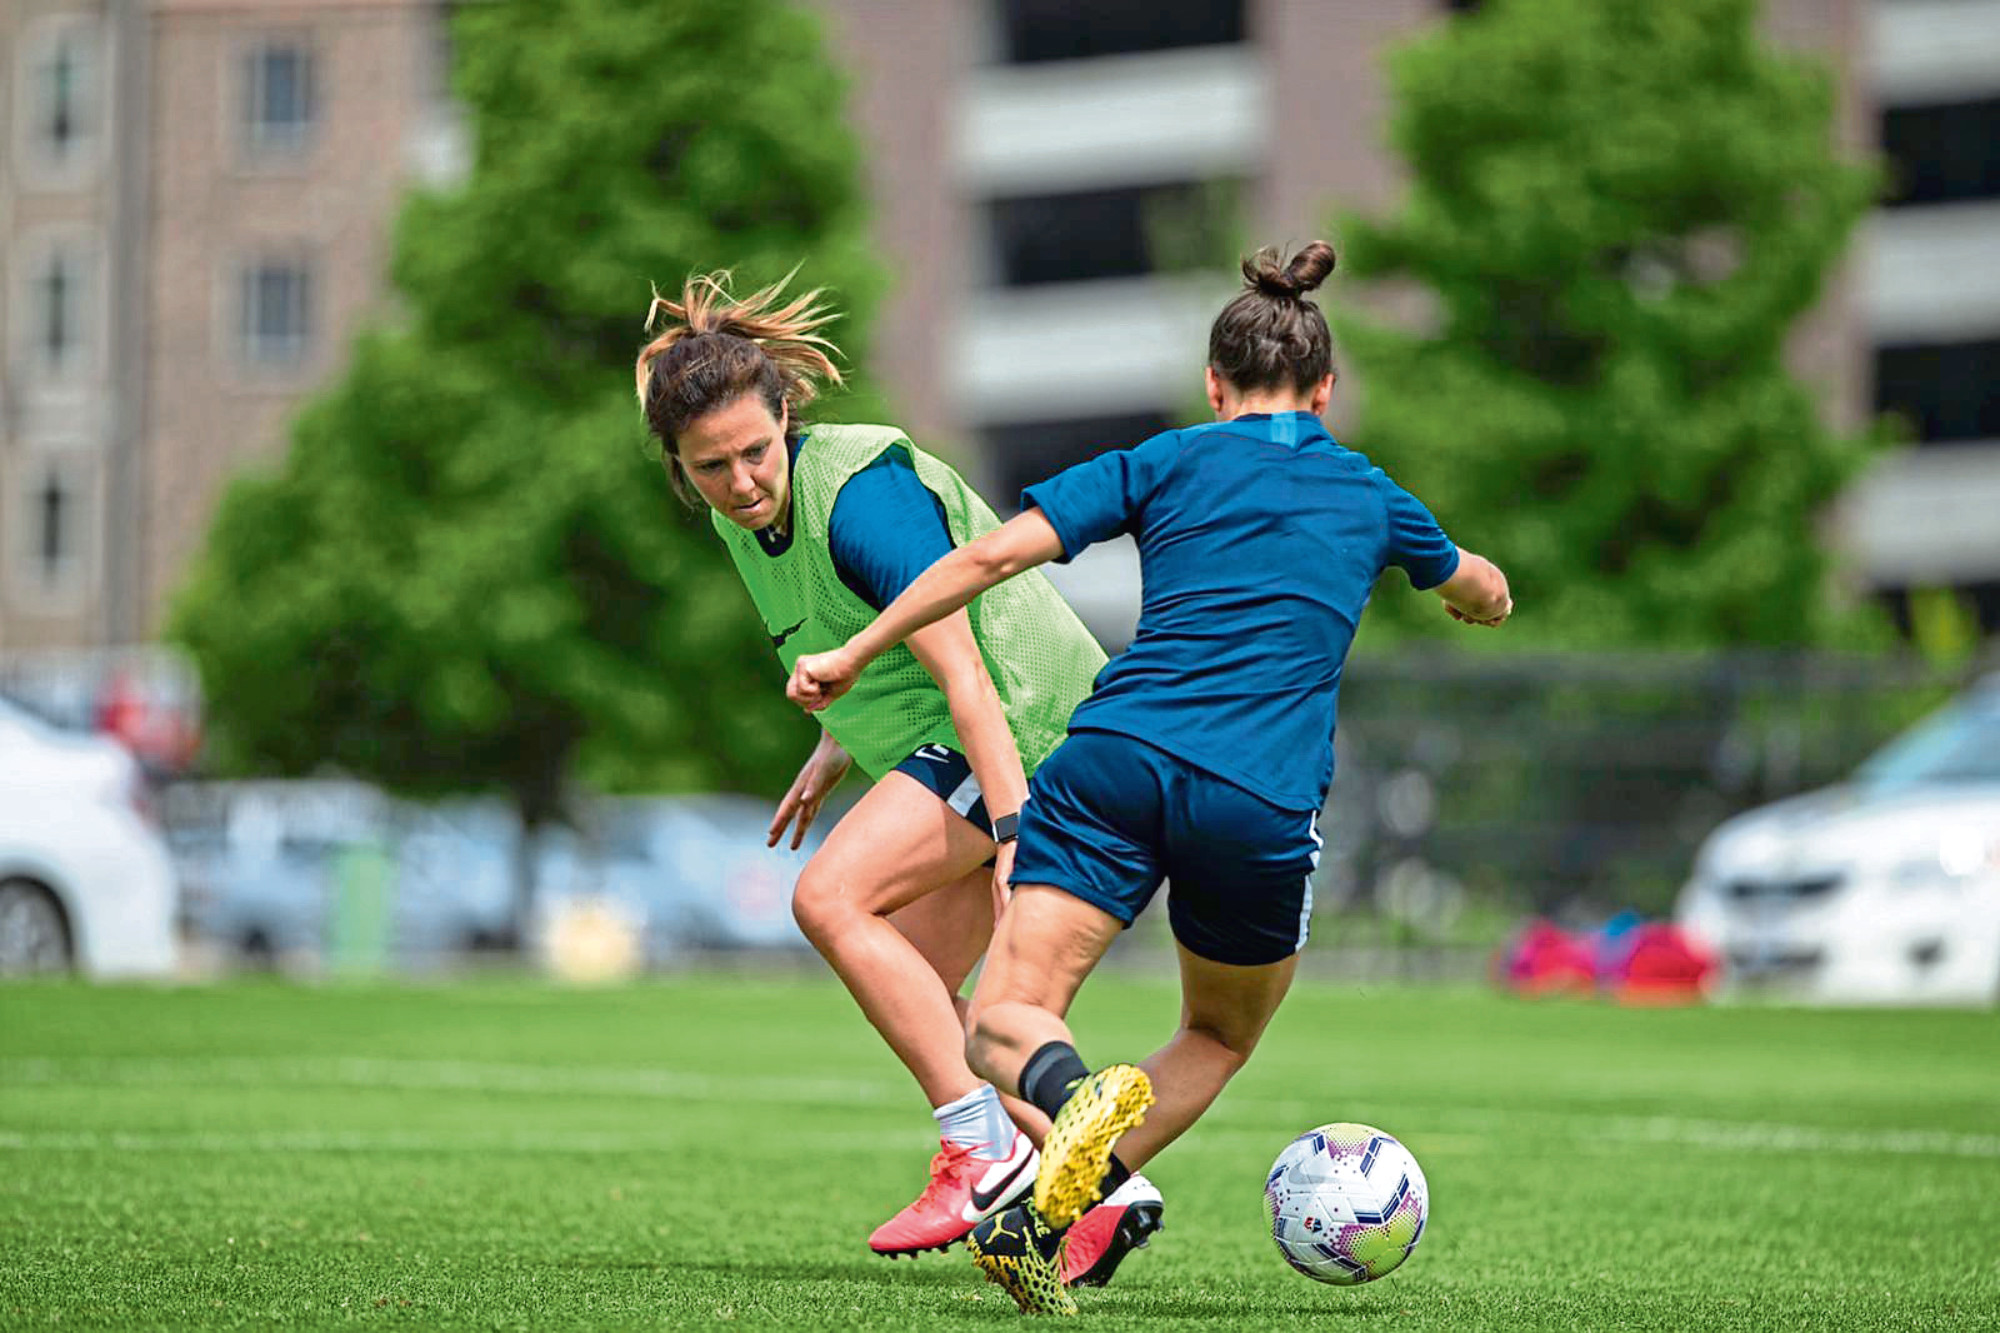 Utah Royals have been back in training in anticipation of football's return.